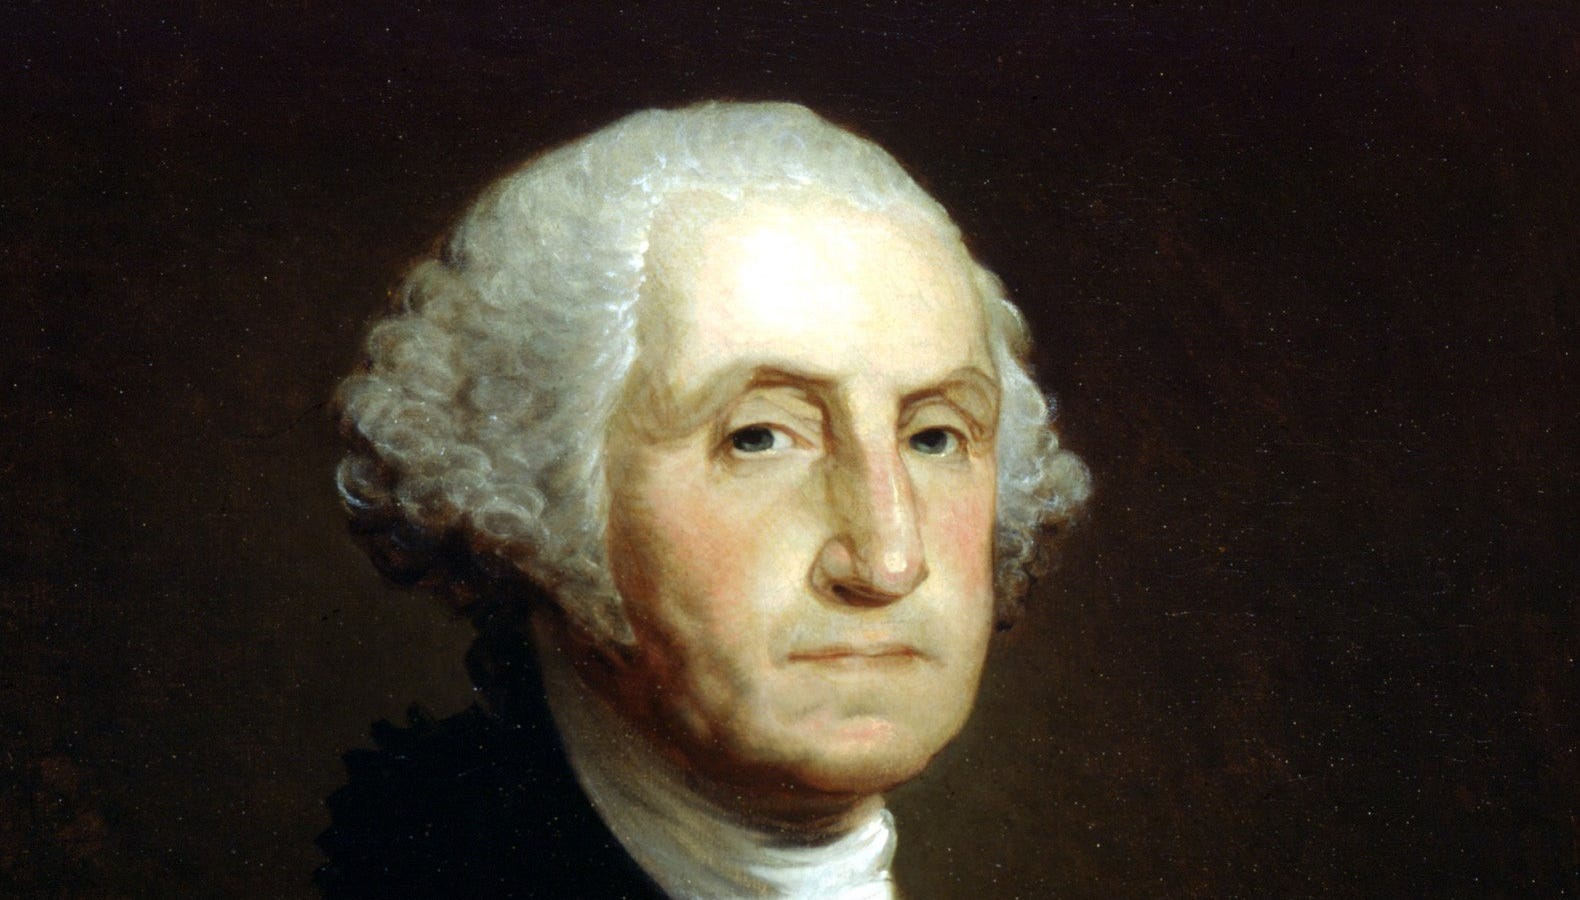 Today in History, April 30: George Washington took oath as first president